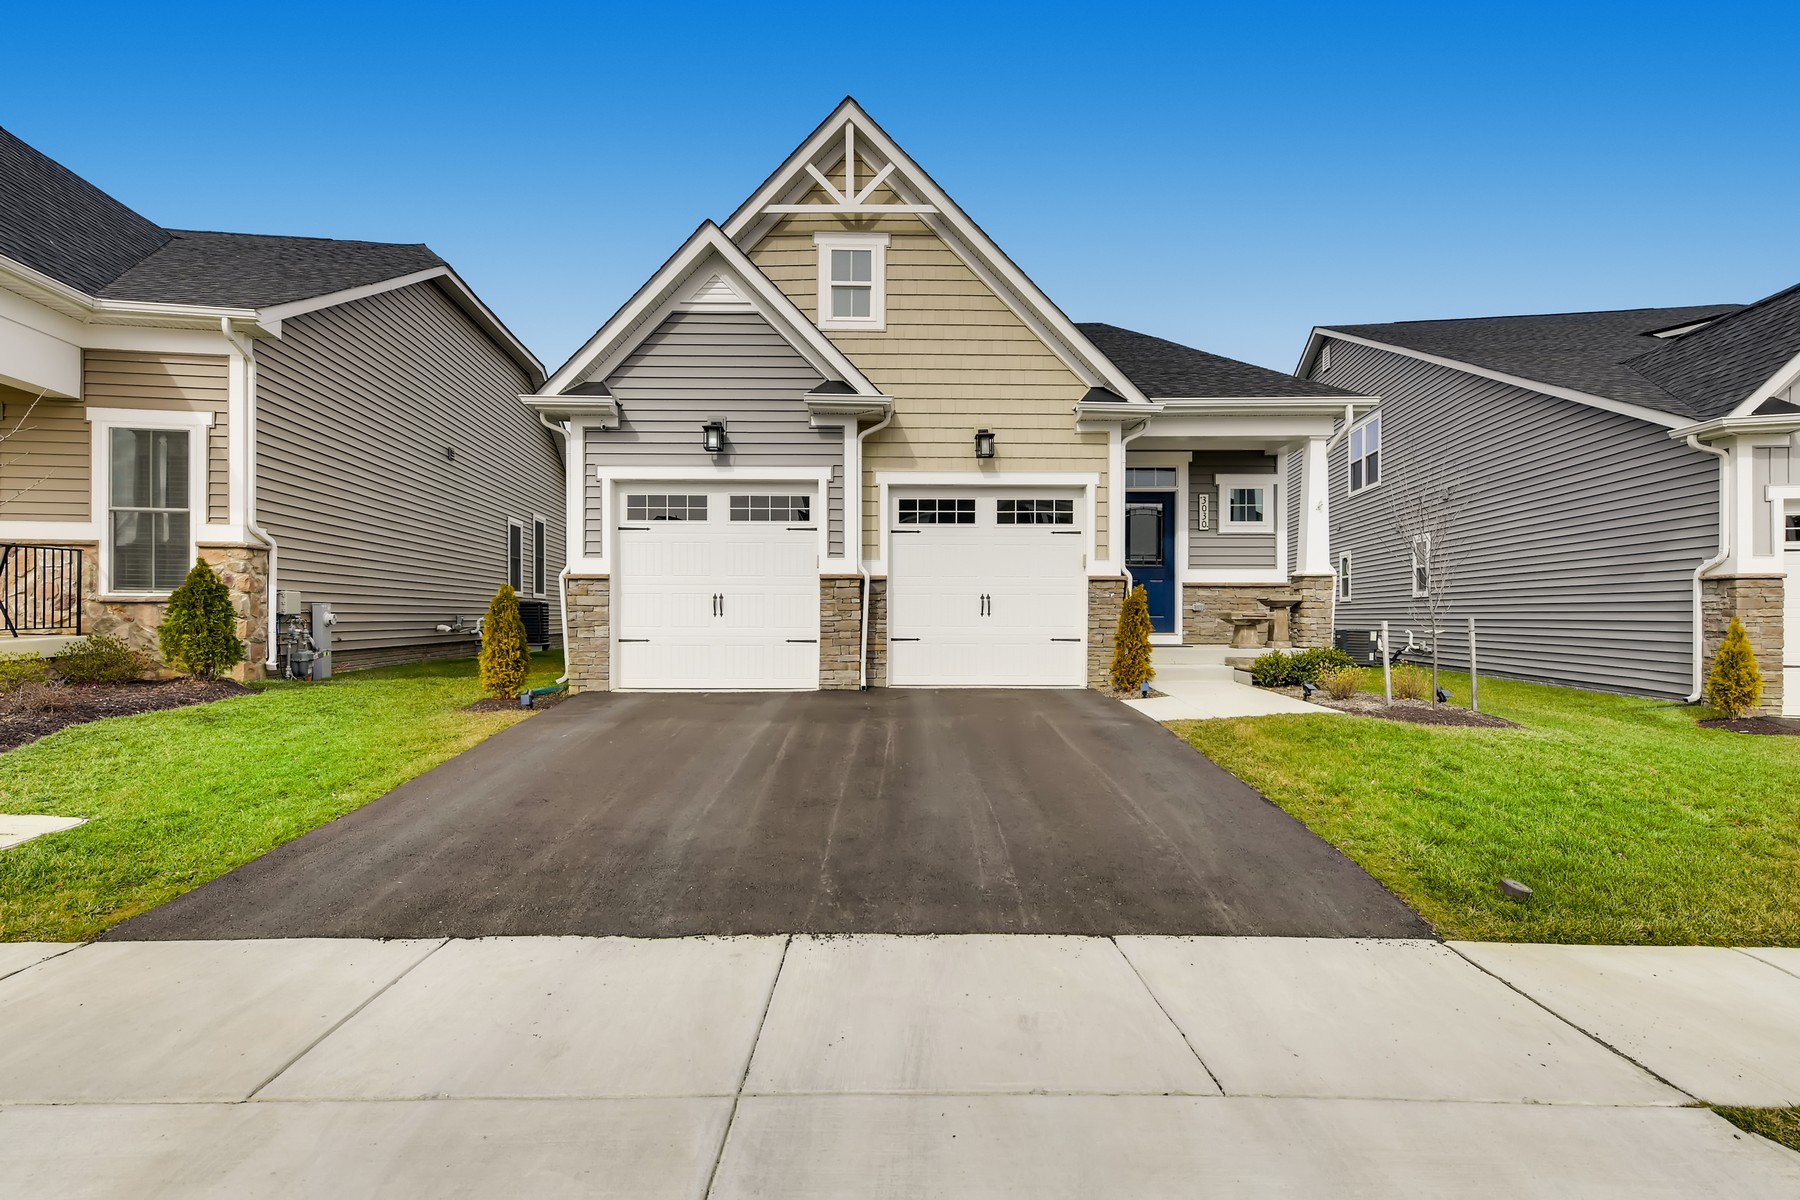 Single Family Homes for Sale at Spectacular New Build 3030 Turnstile Lane Odenton, Maryland 21113 United States